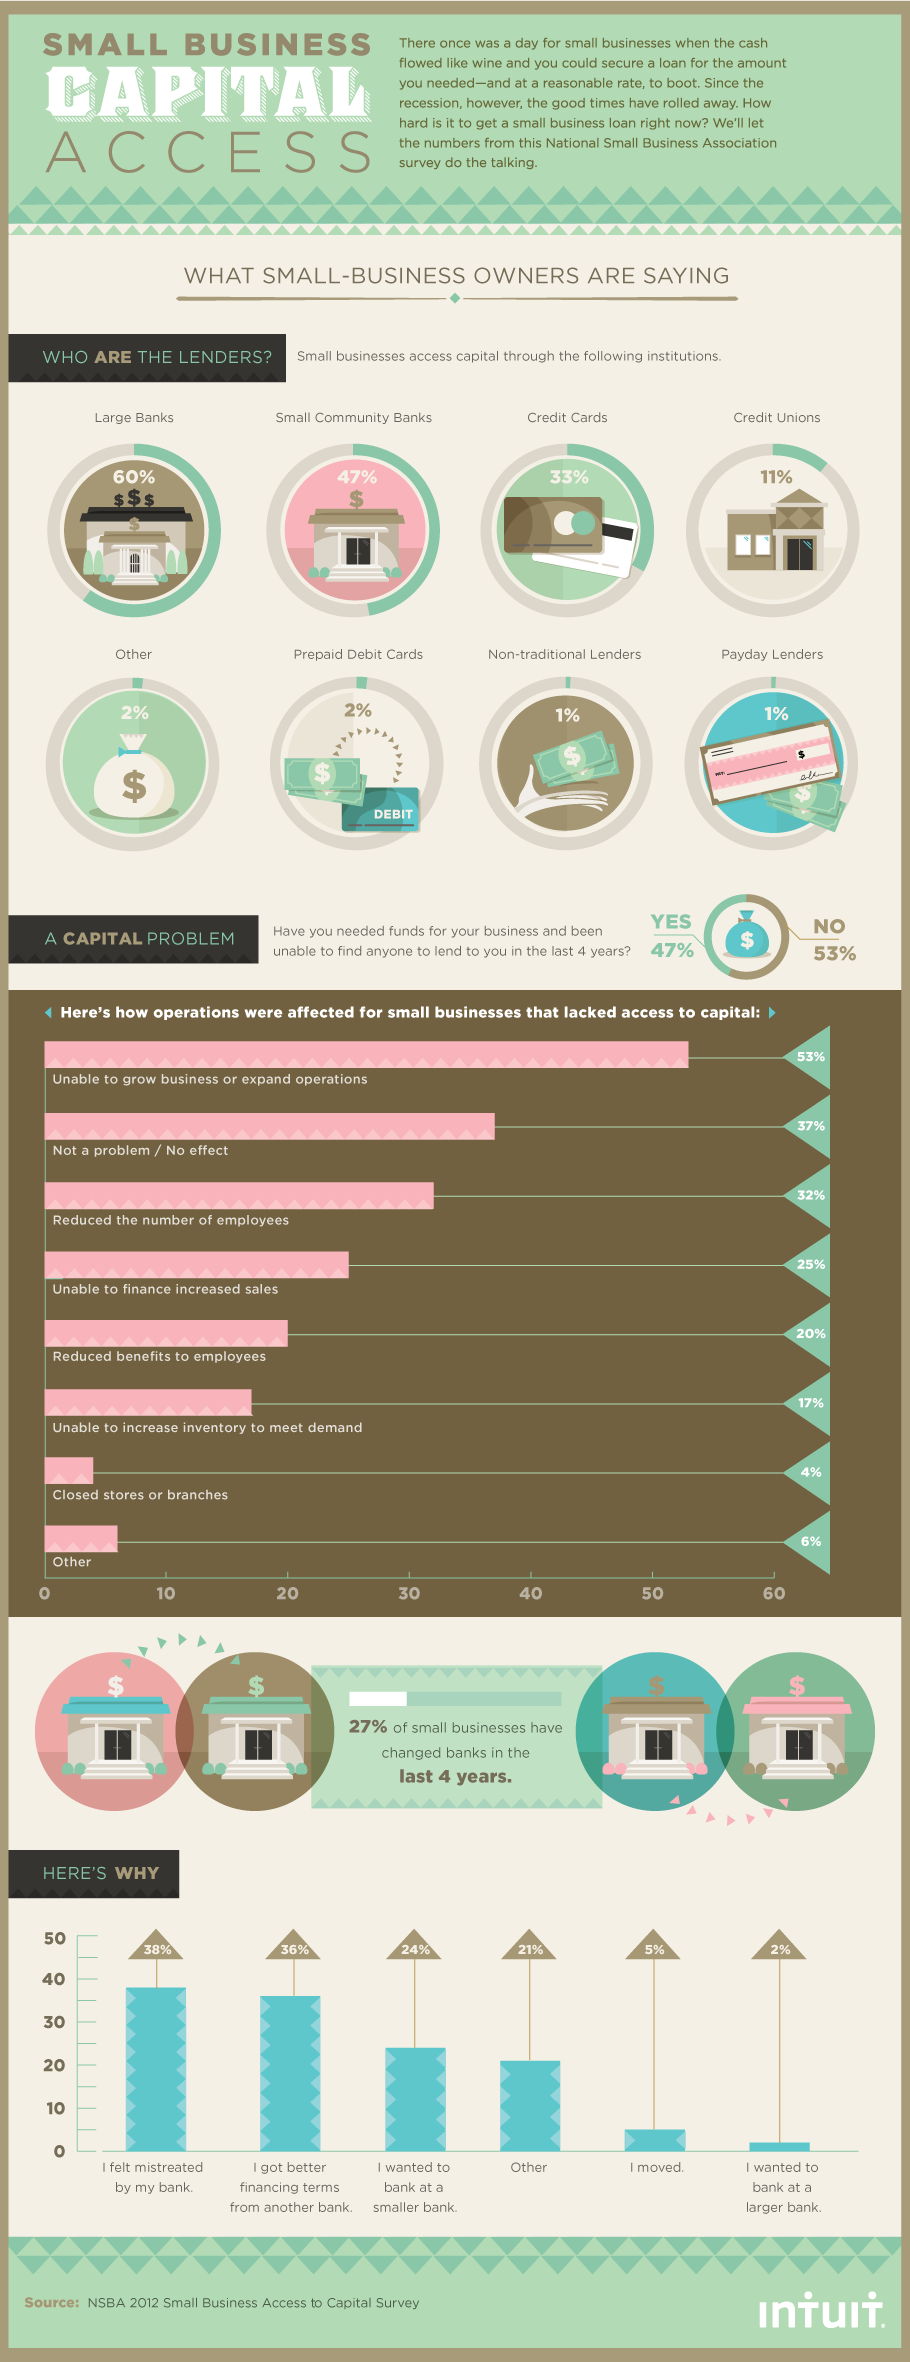 Infographic: Small Business Loans Are a Capital Problem